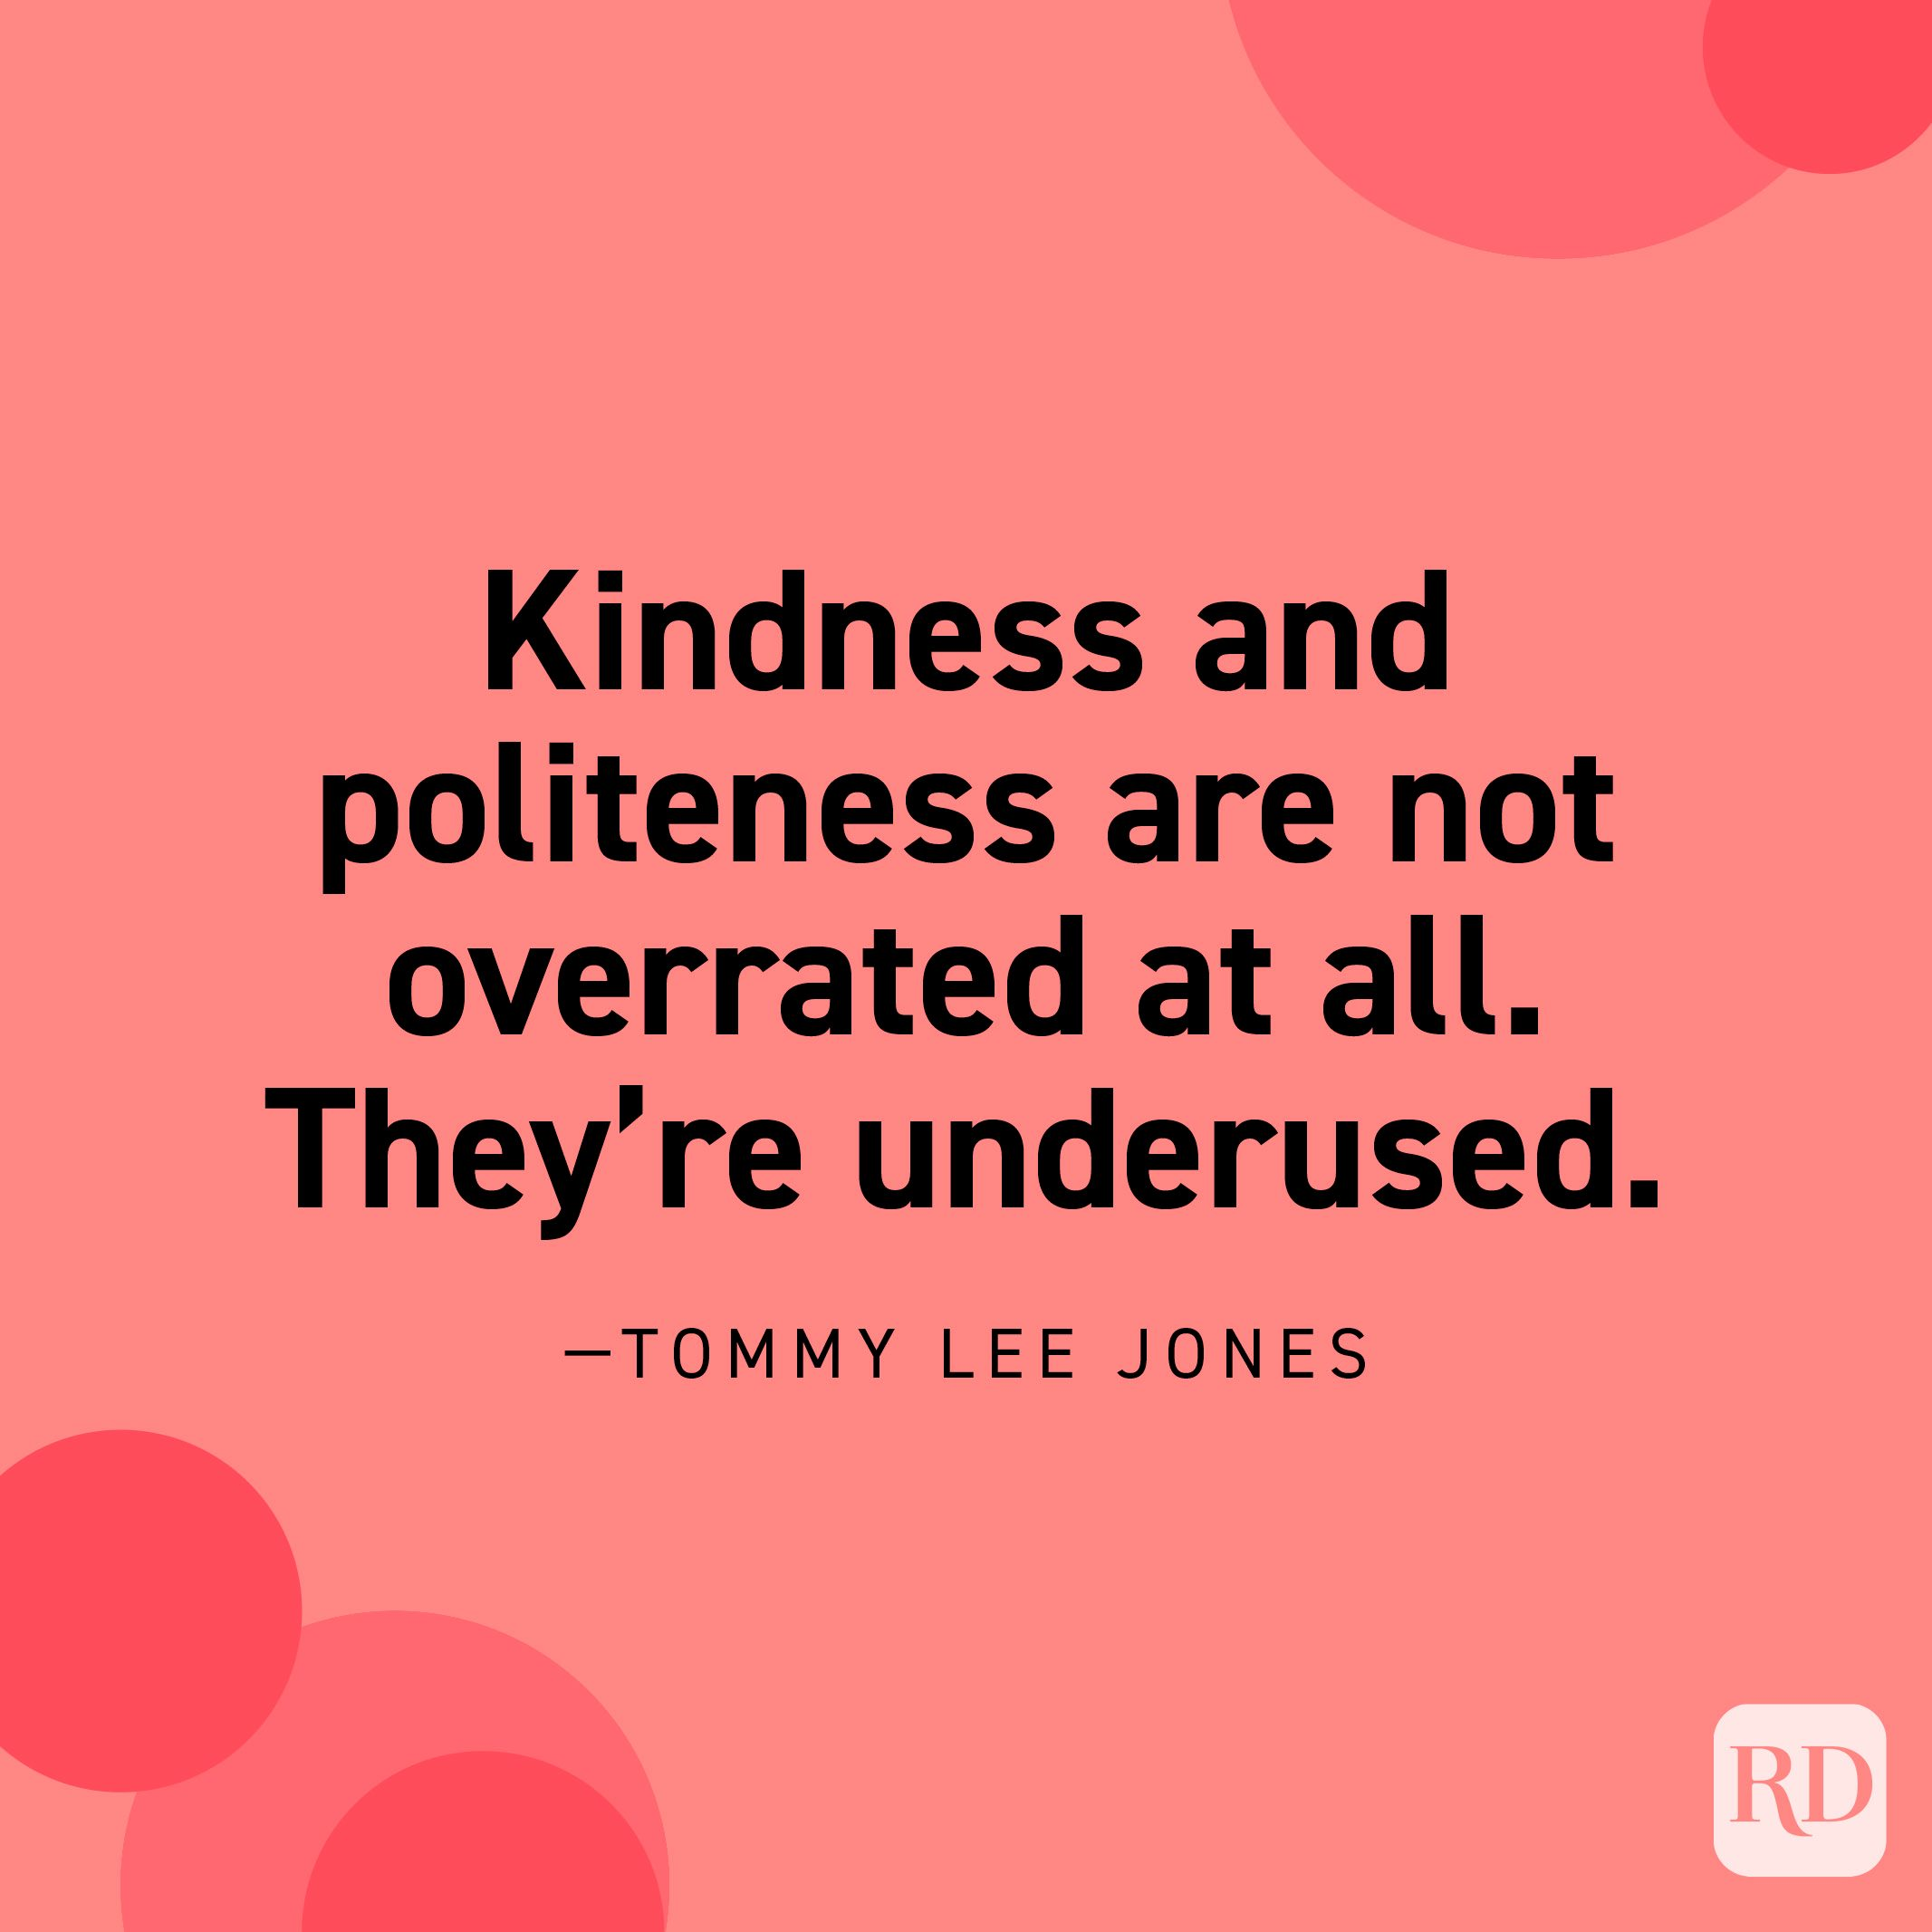 """""""Kindness and politeness are not overrated at all. They're underused."""" —Tommy Lee Jones"""